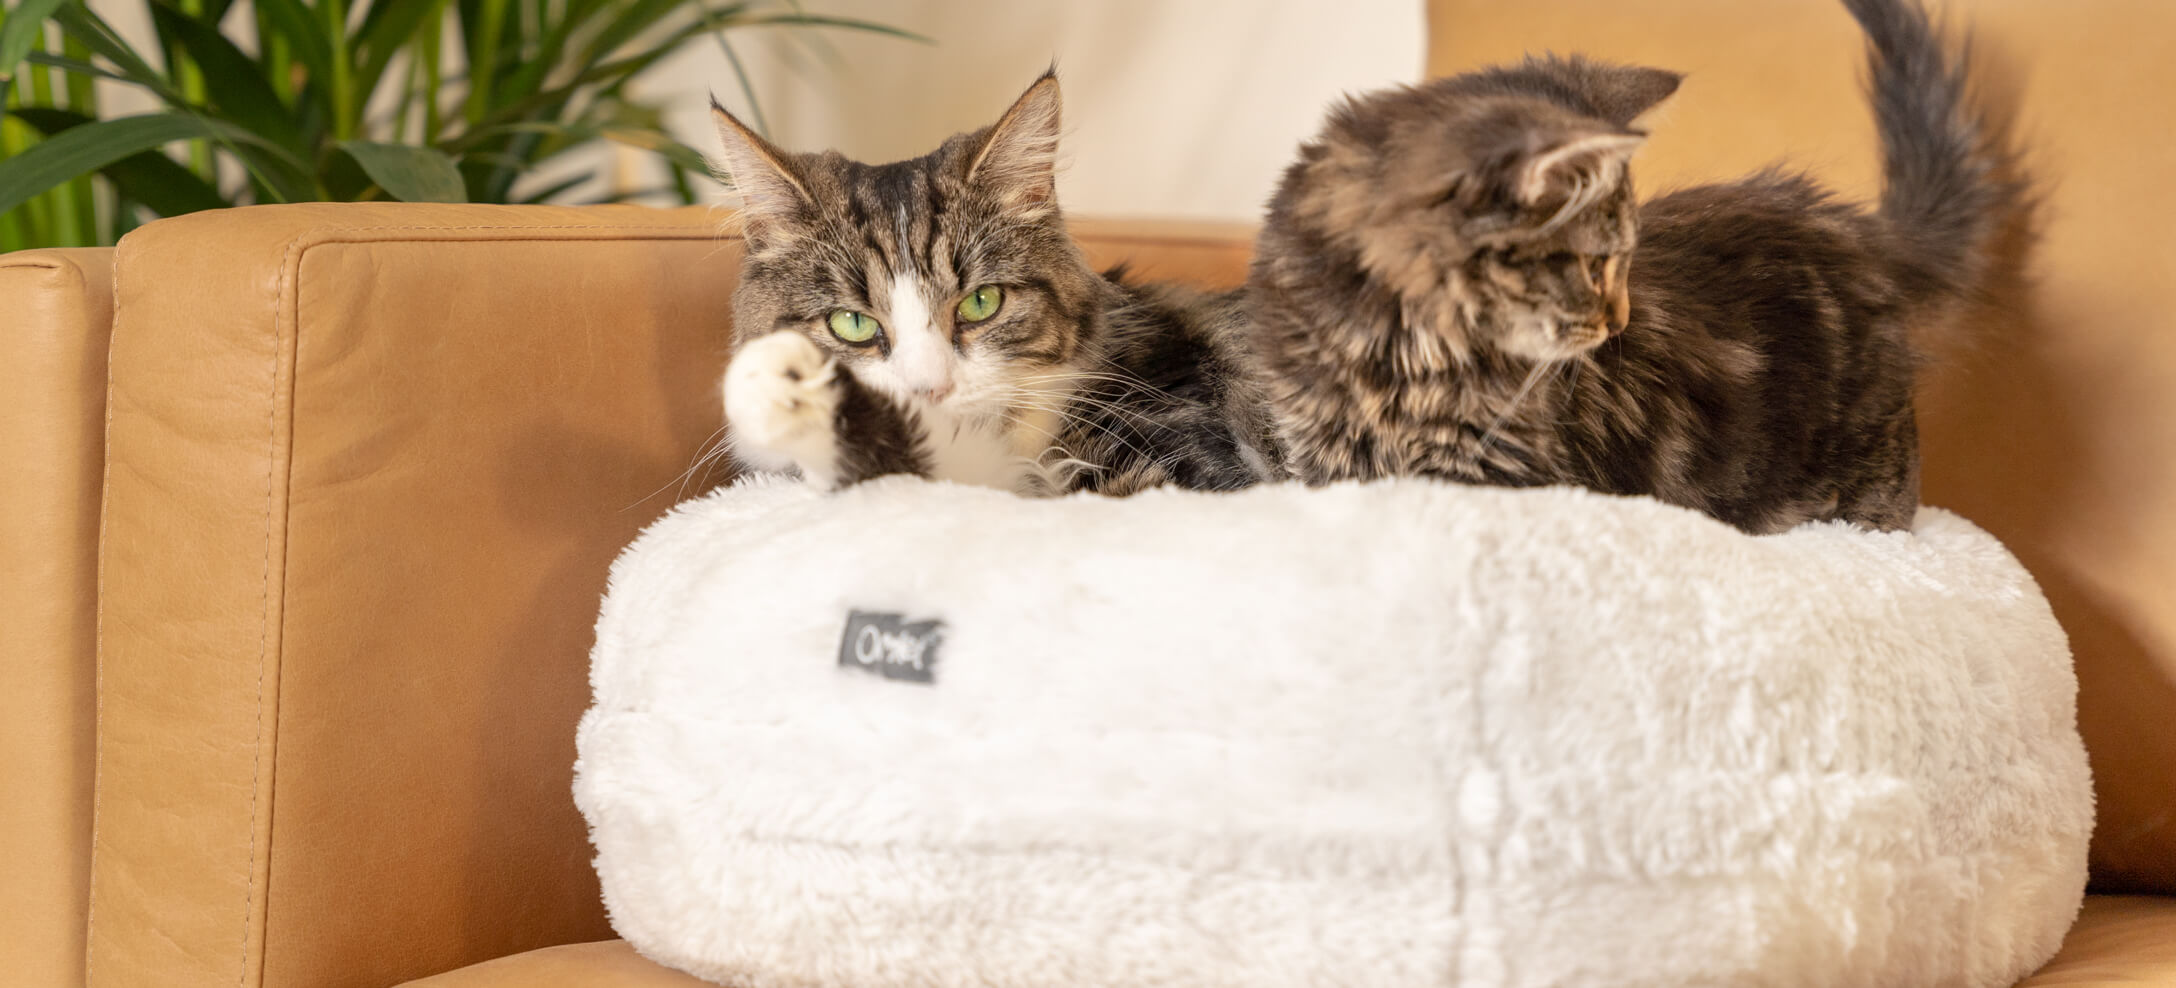 Two cats sharing a white cat bed placed on a sofa